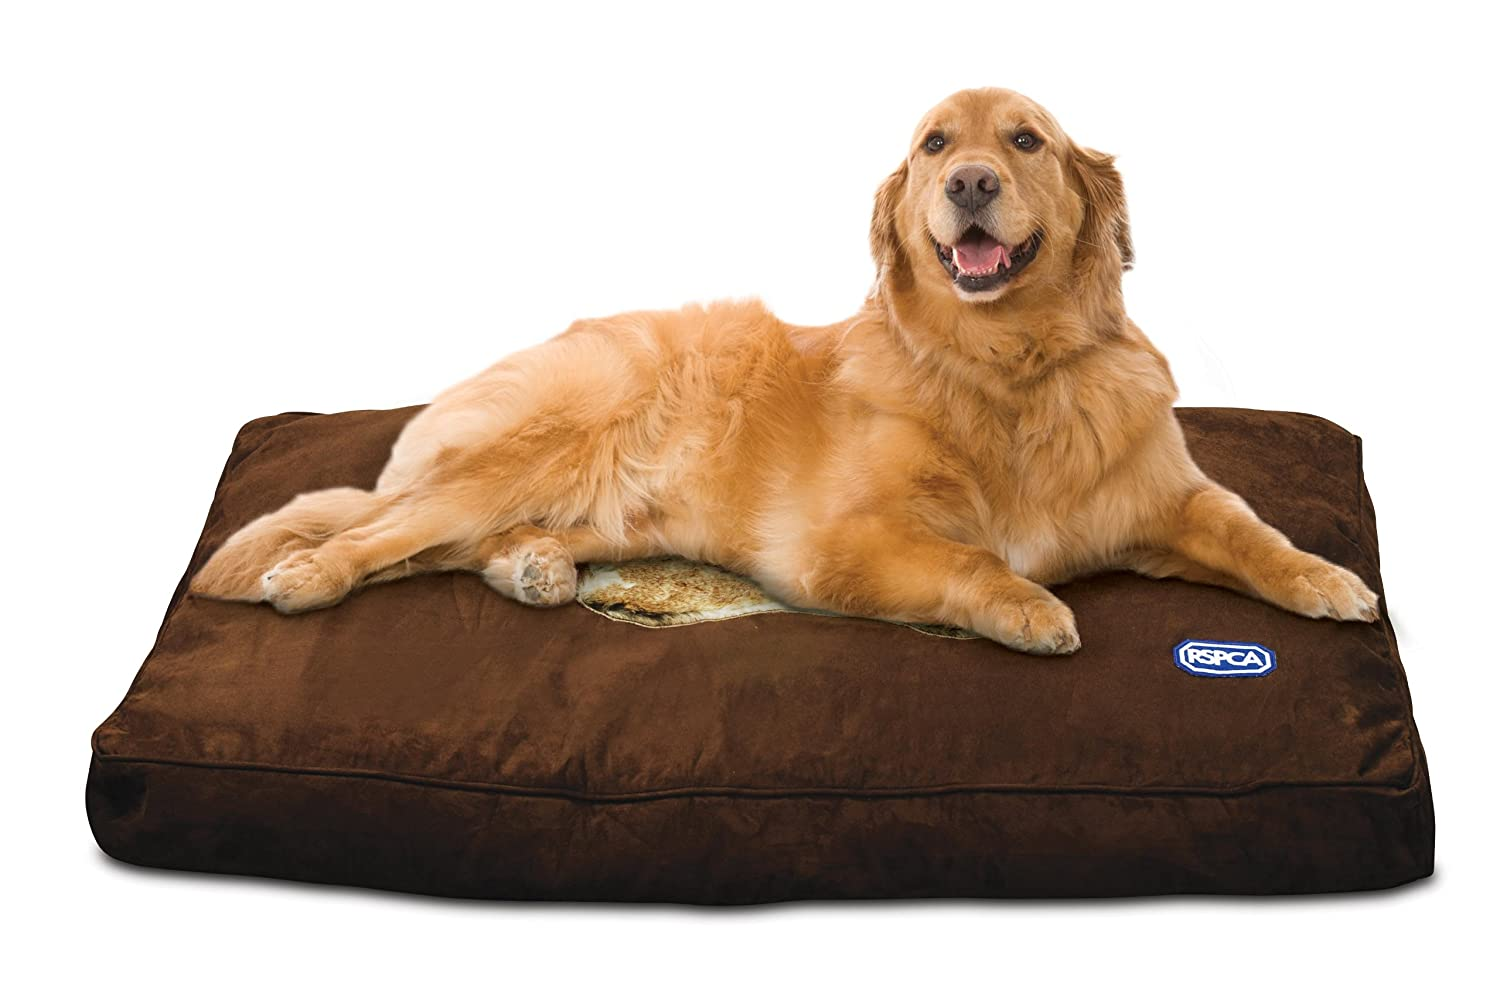 pet dog suede extra amazon cuddle k strategist large on h foam cooling best shag cube article beds bed products